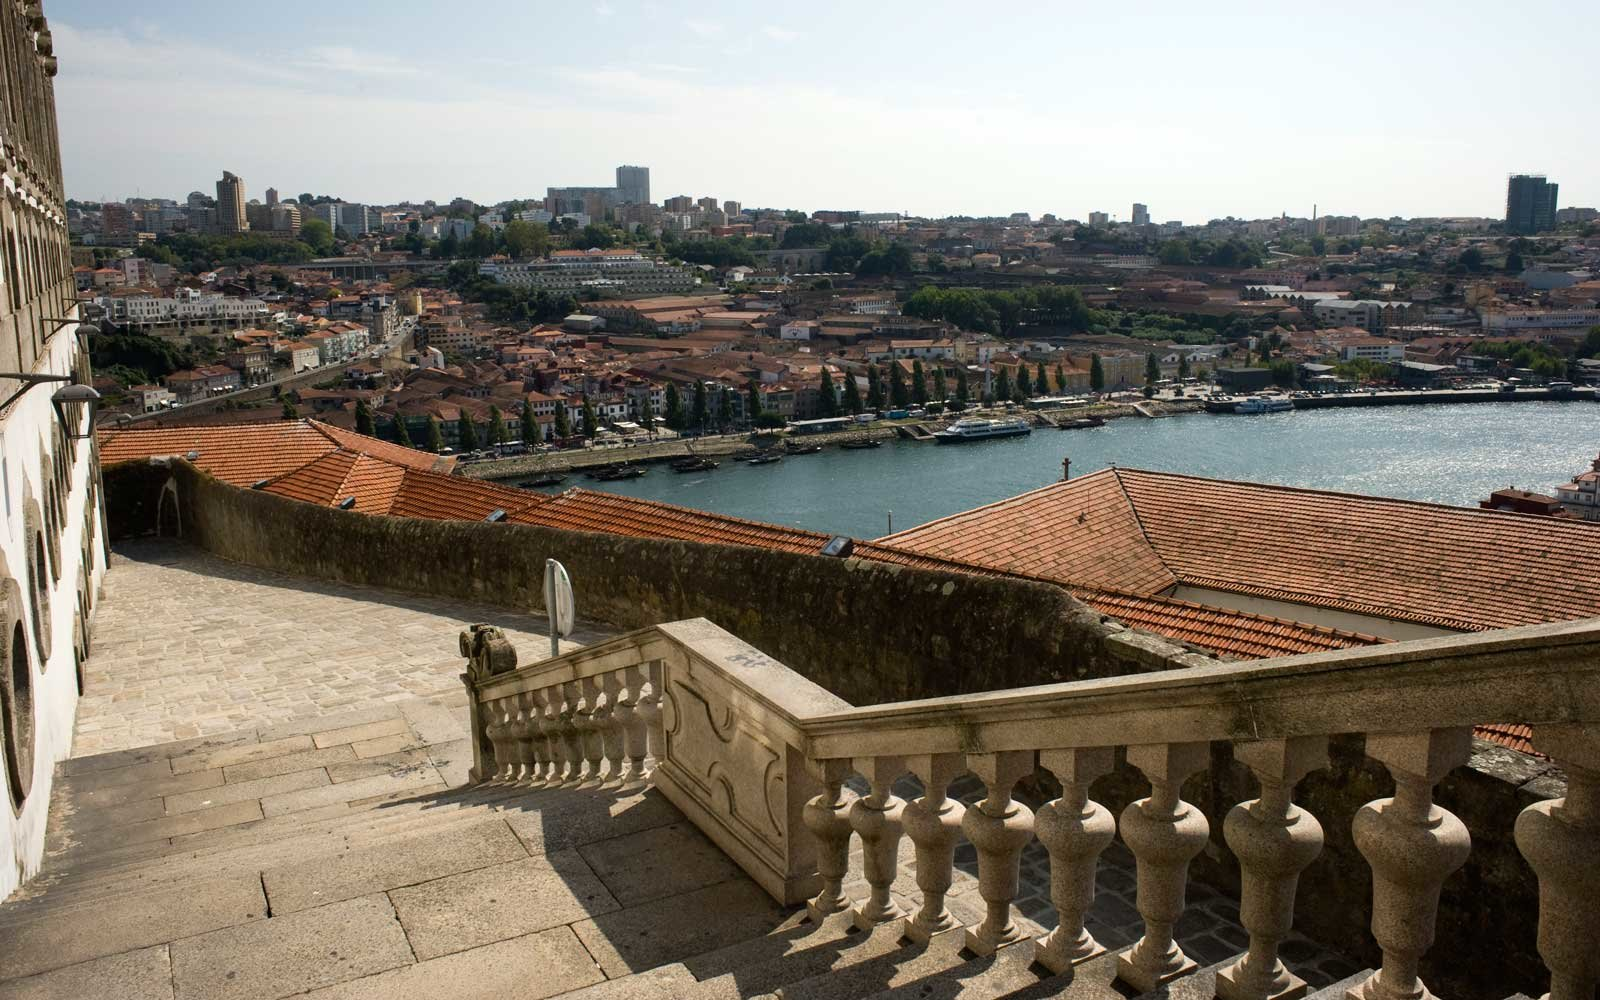 Douro River from the stone steps leading down from the Porto Cathedral or the Sé Cathedral which is located on a hill in Pena Ventosa which is in the heart of the old town.